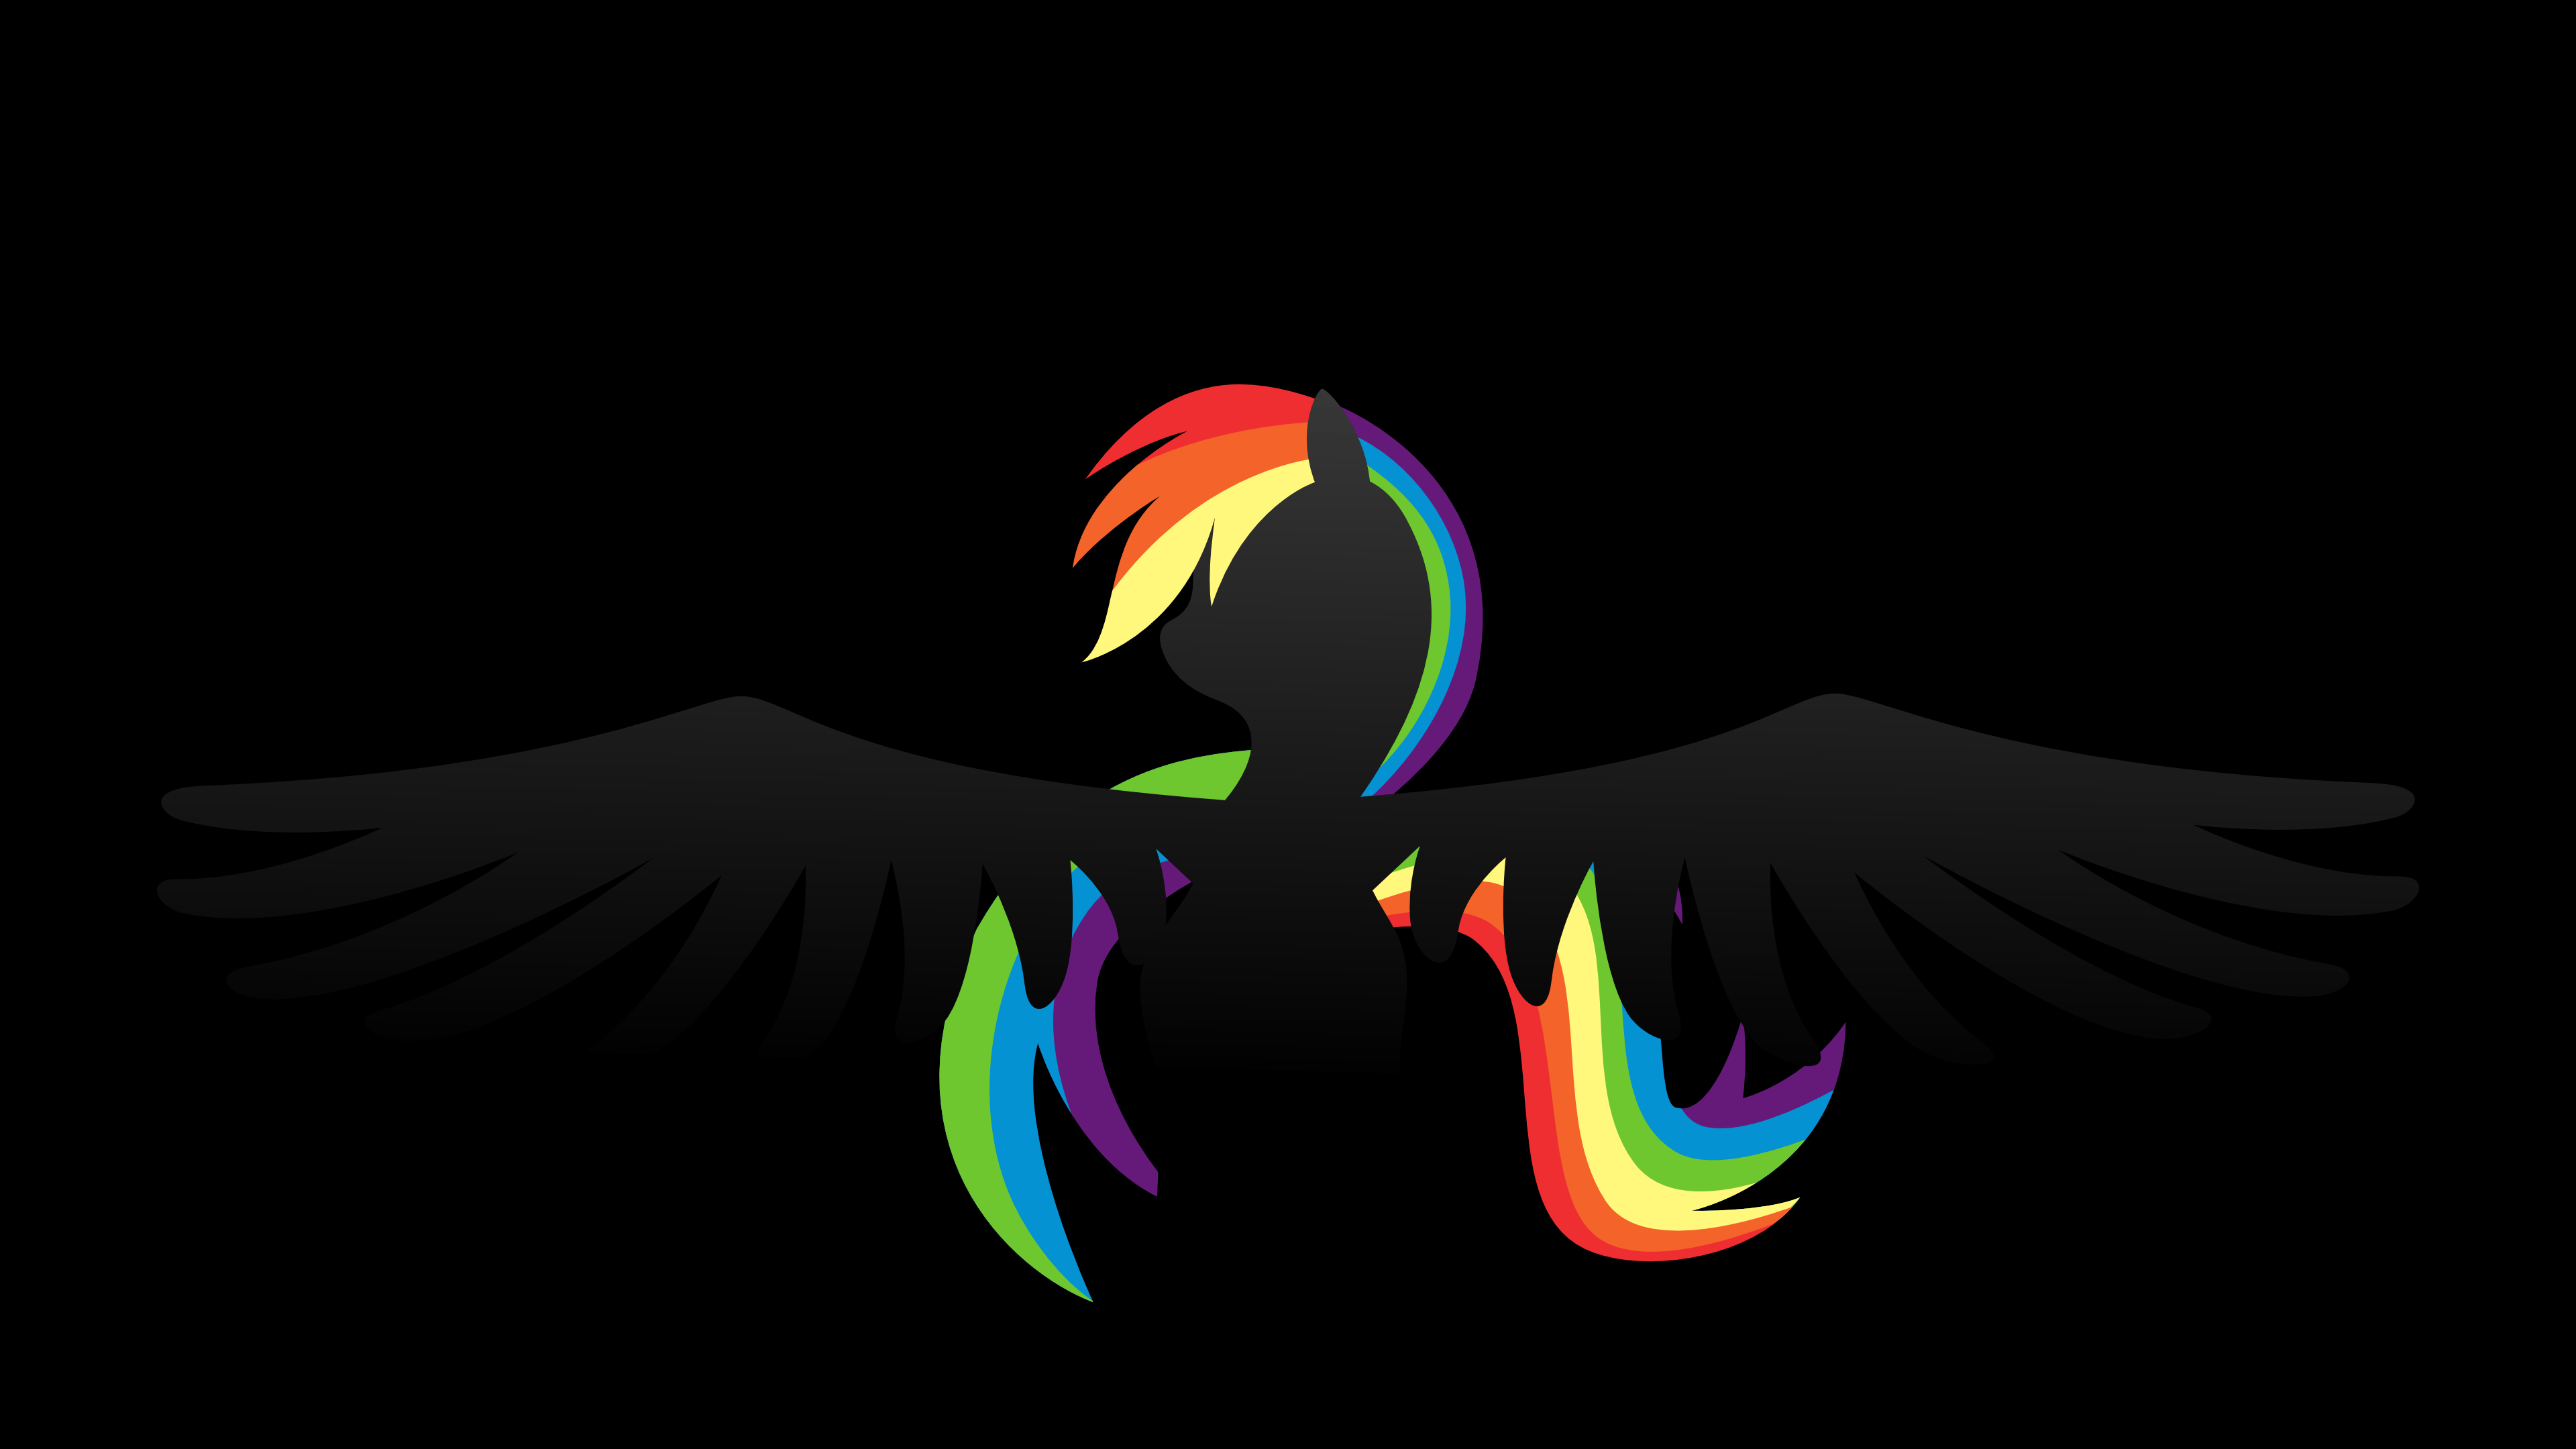 Hd Wallpapers With Quotes On Friendship Rainbow Dash Wallpaper High Quality Pixelstalk Net